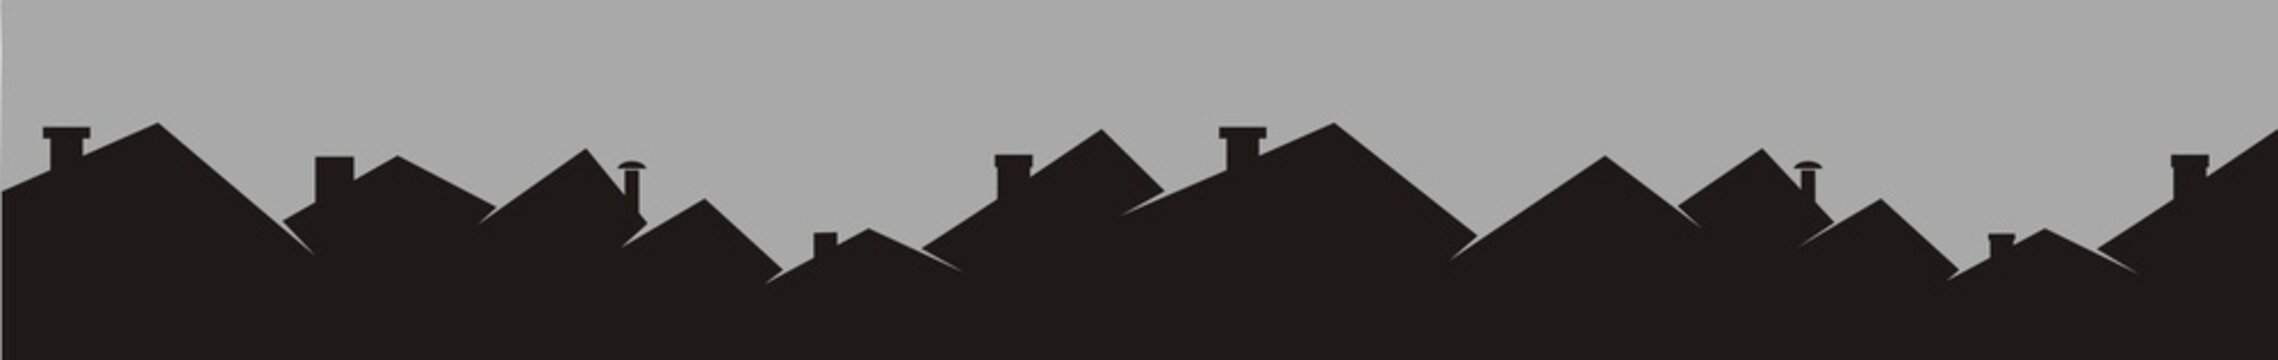 Roofs and chimneys, cityscape, black silhouette, vector icon.